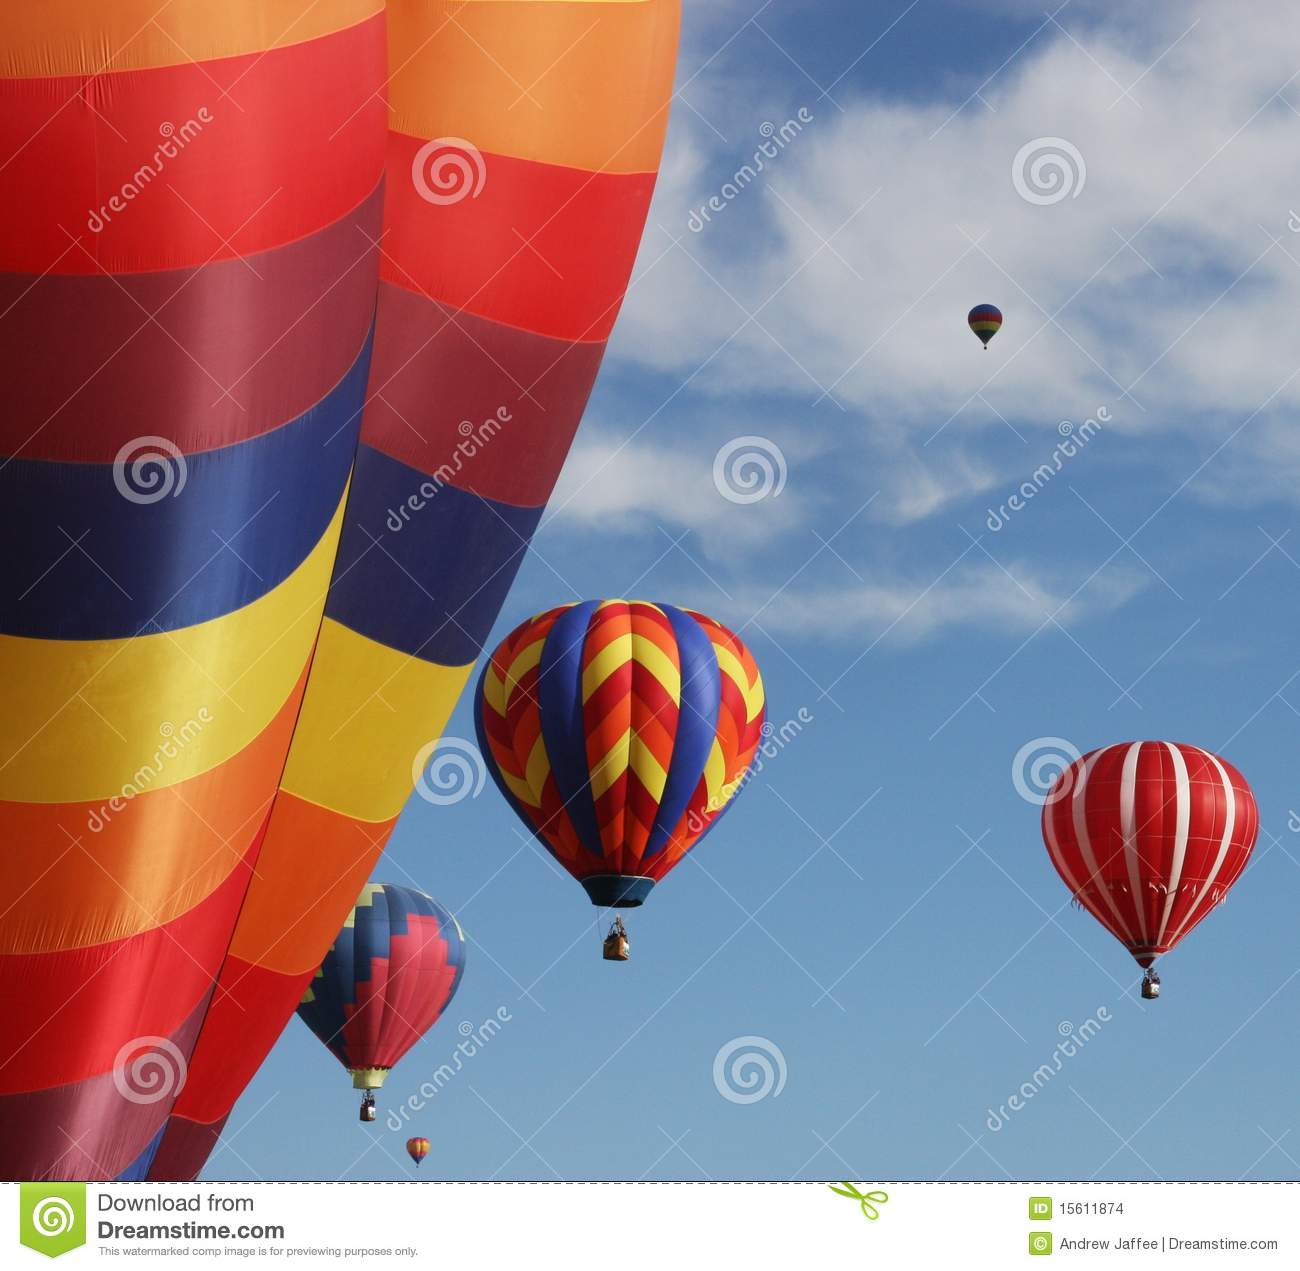 Colorful Hot Air Balloons Stock Images - Image: 15611874